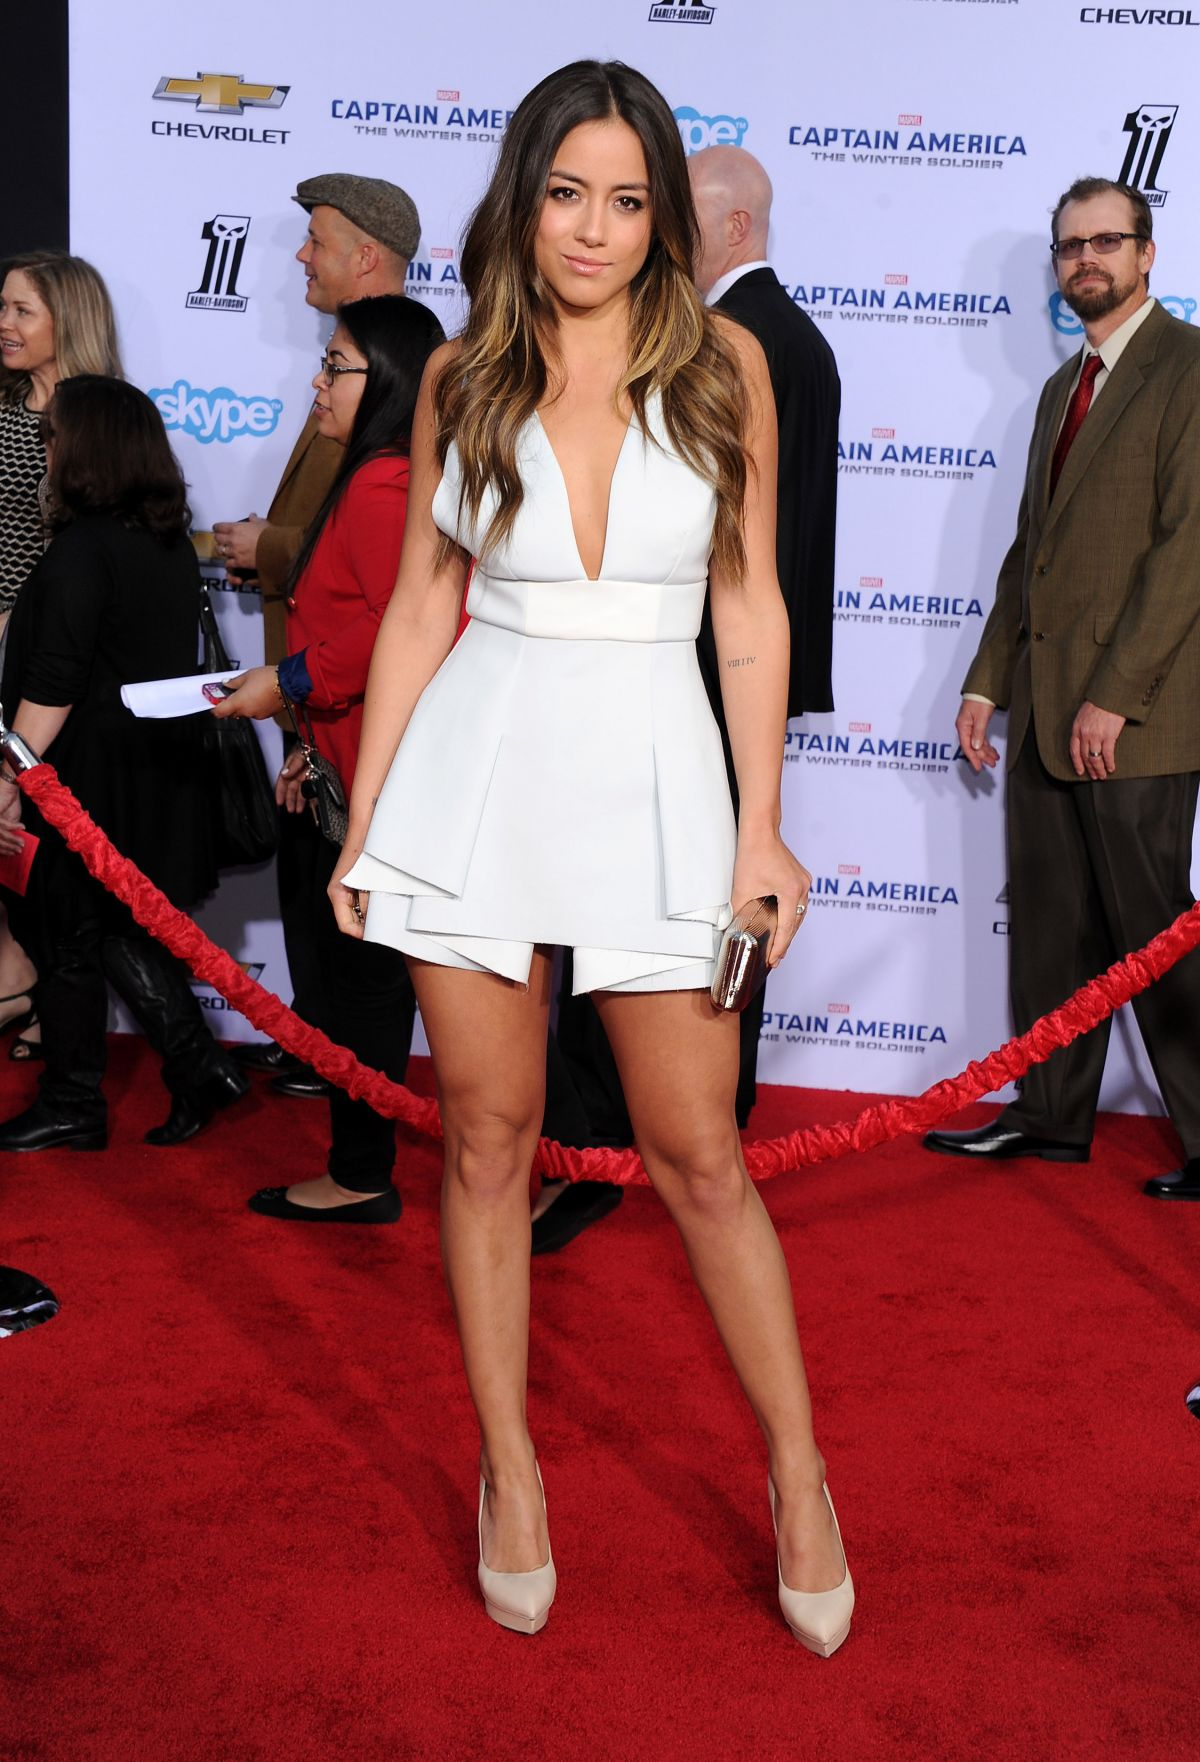 CHLOE BENNET at Captain America: The Winter Soldier Premiere in Hollywood